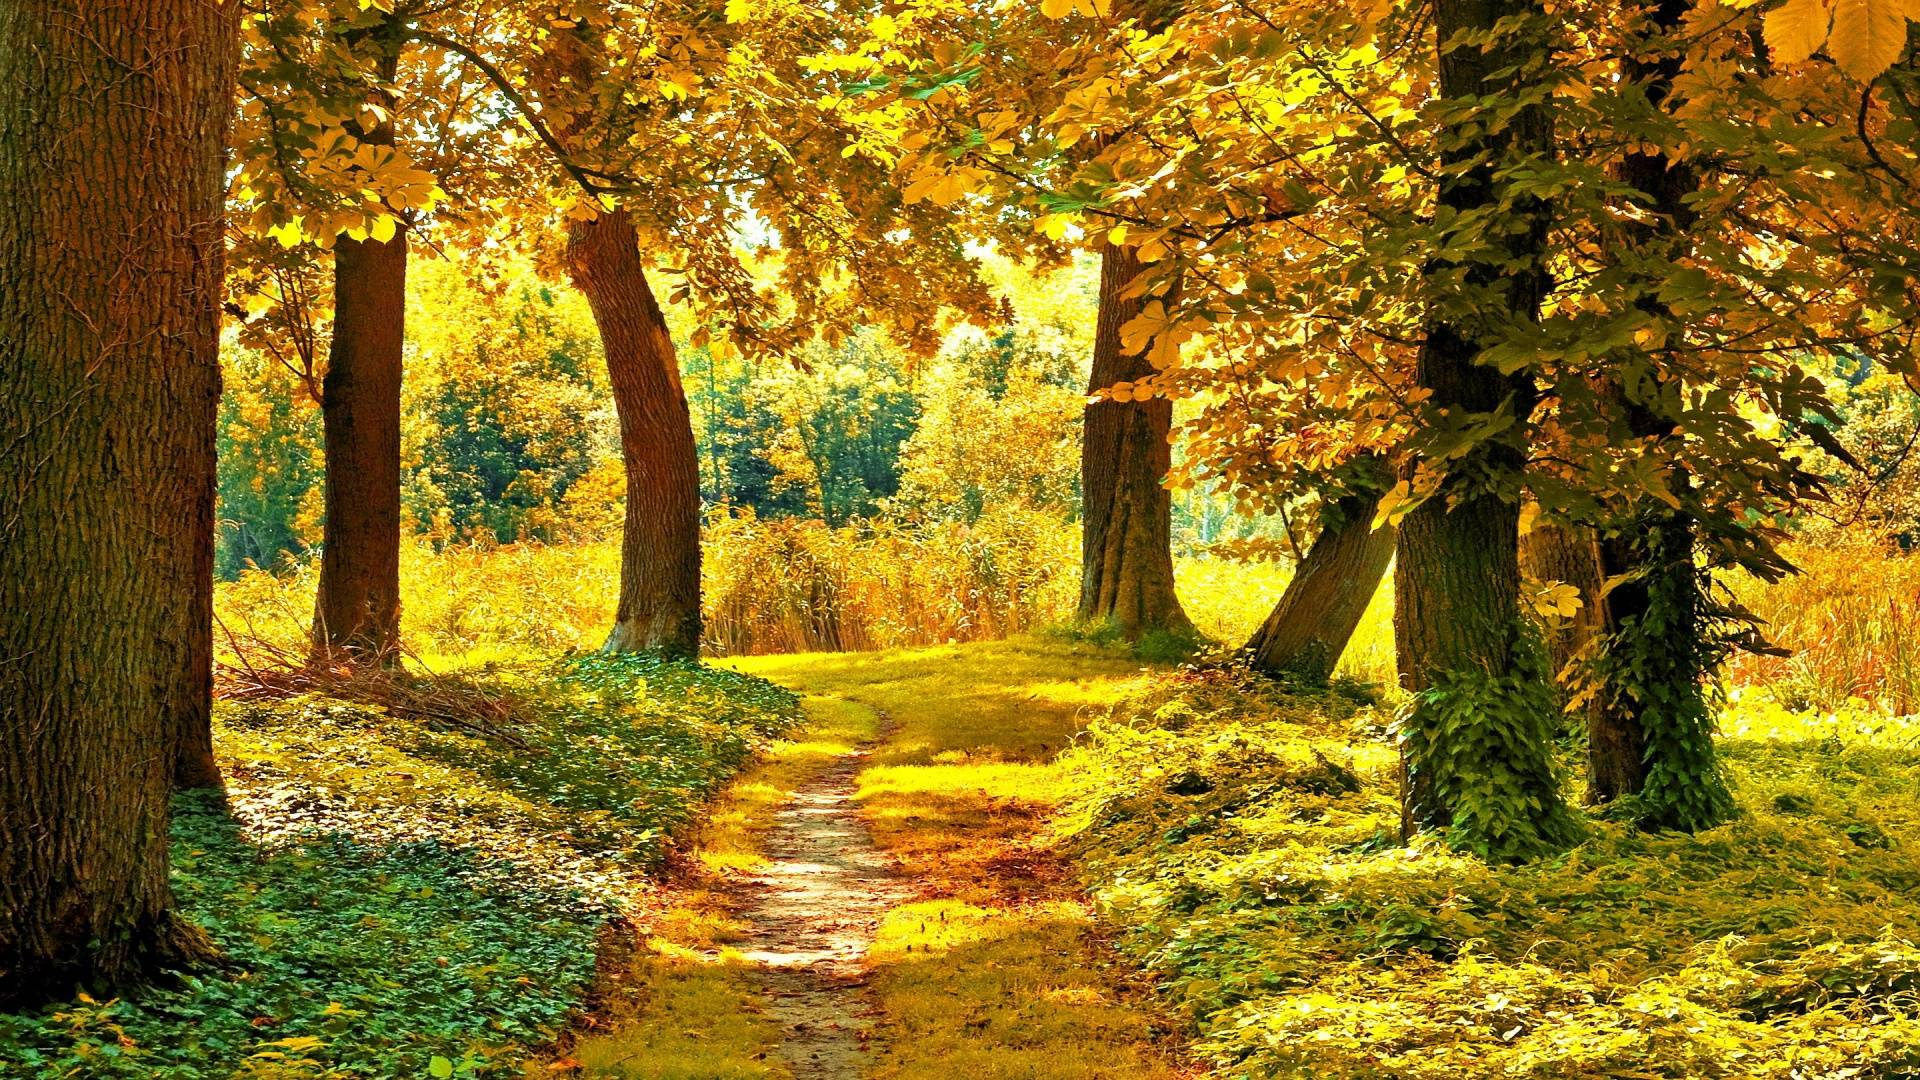 landscape autumn hd wallpaper - photo #8